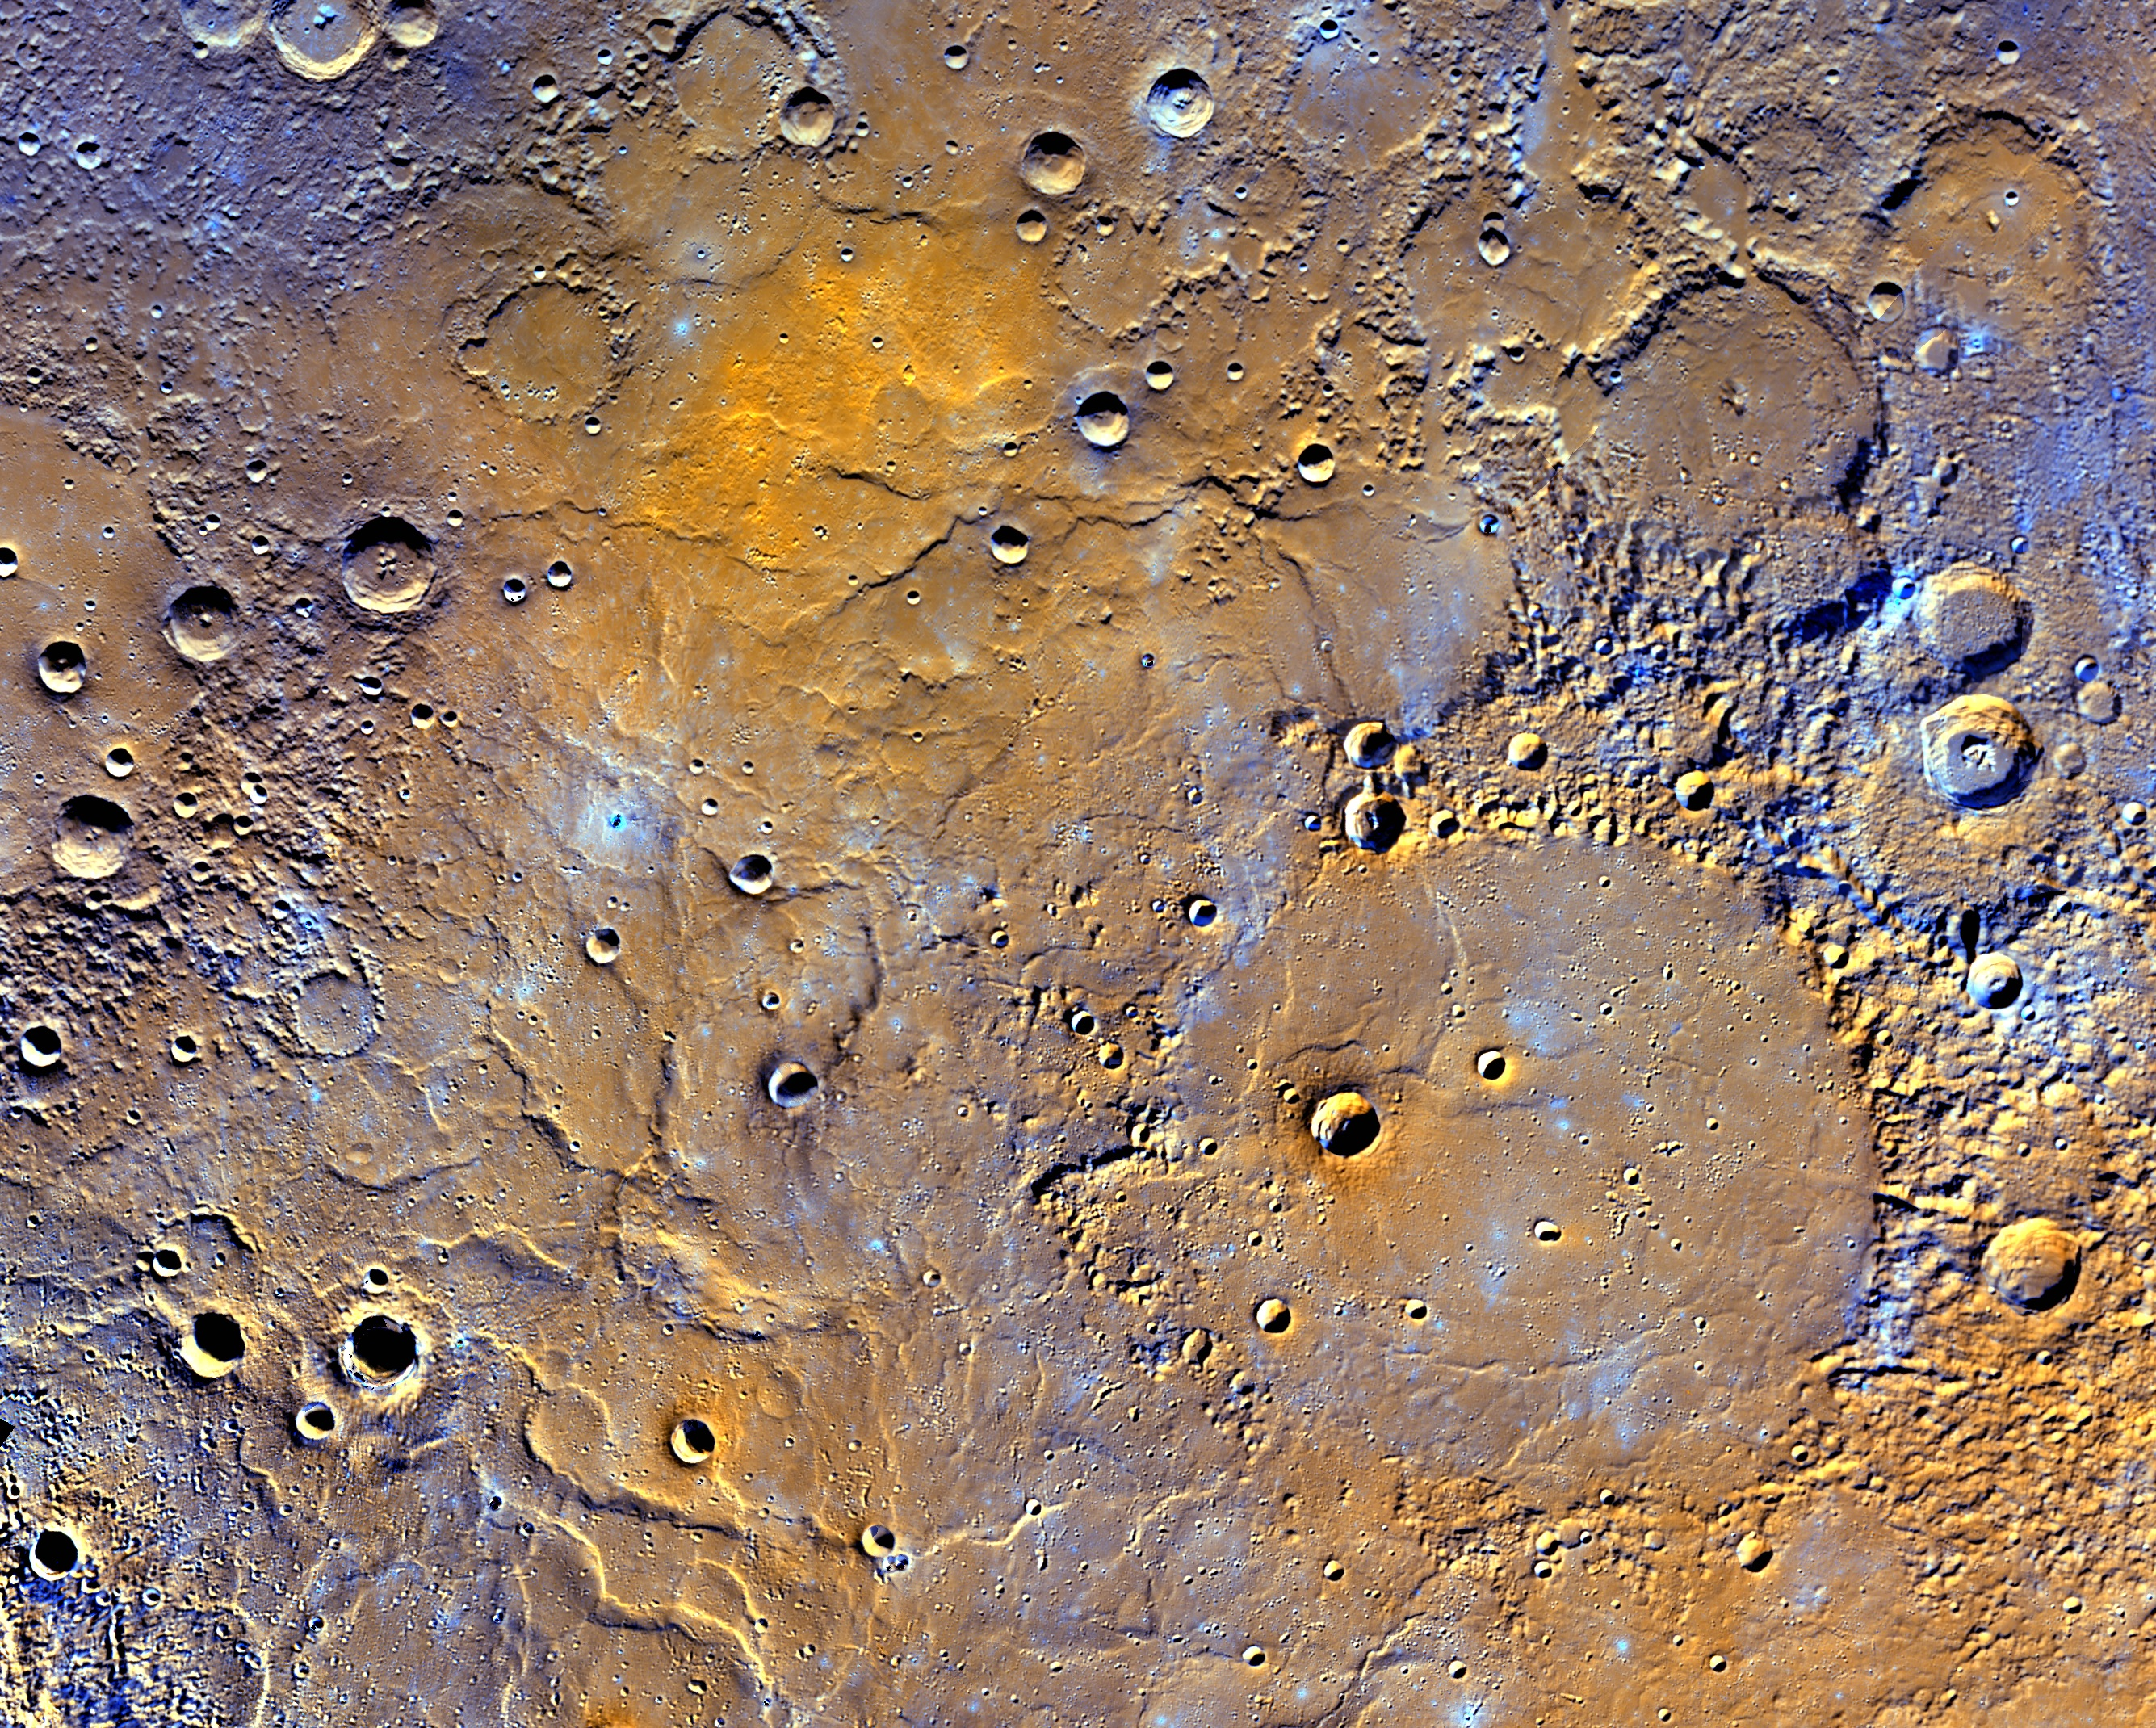 Gorgeous New Mercury Maps Showcase Planet's Striking Features